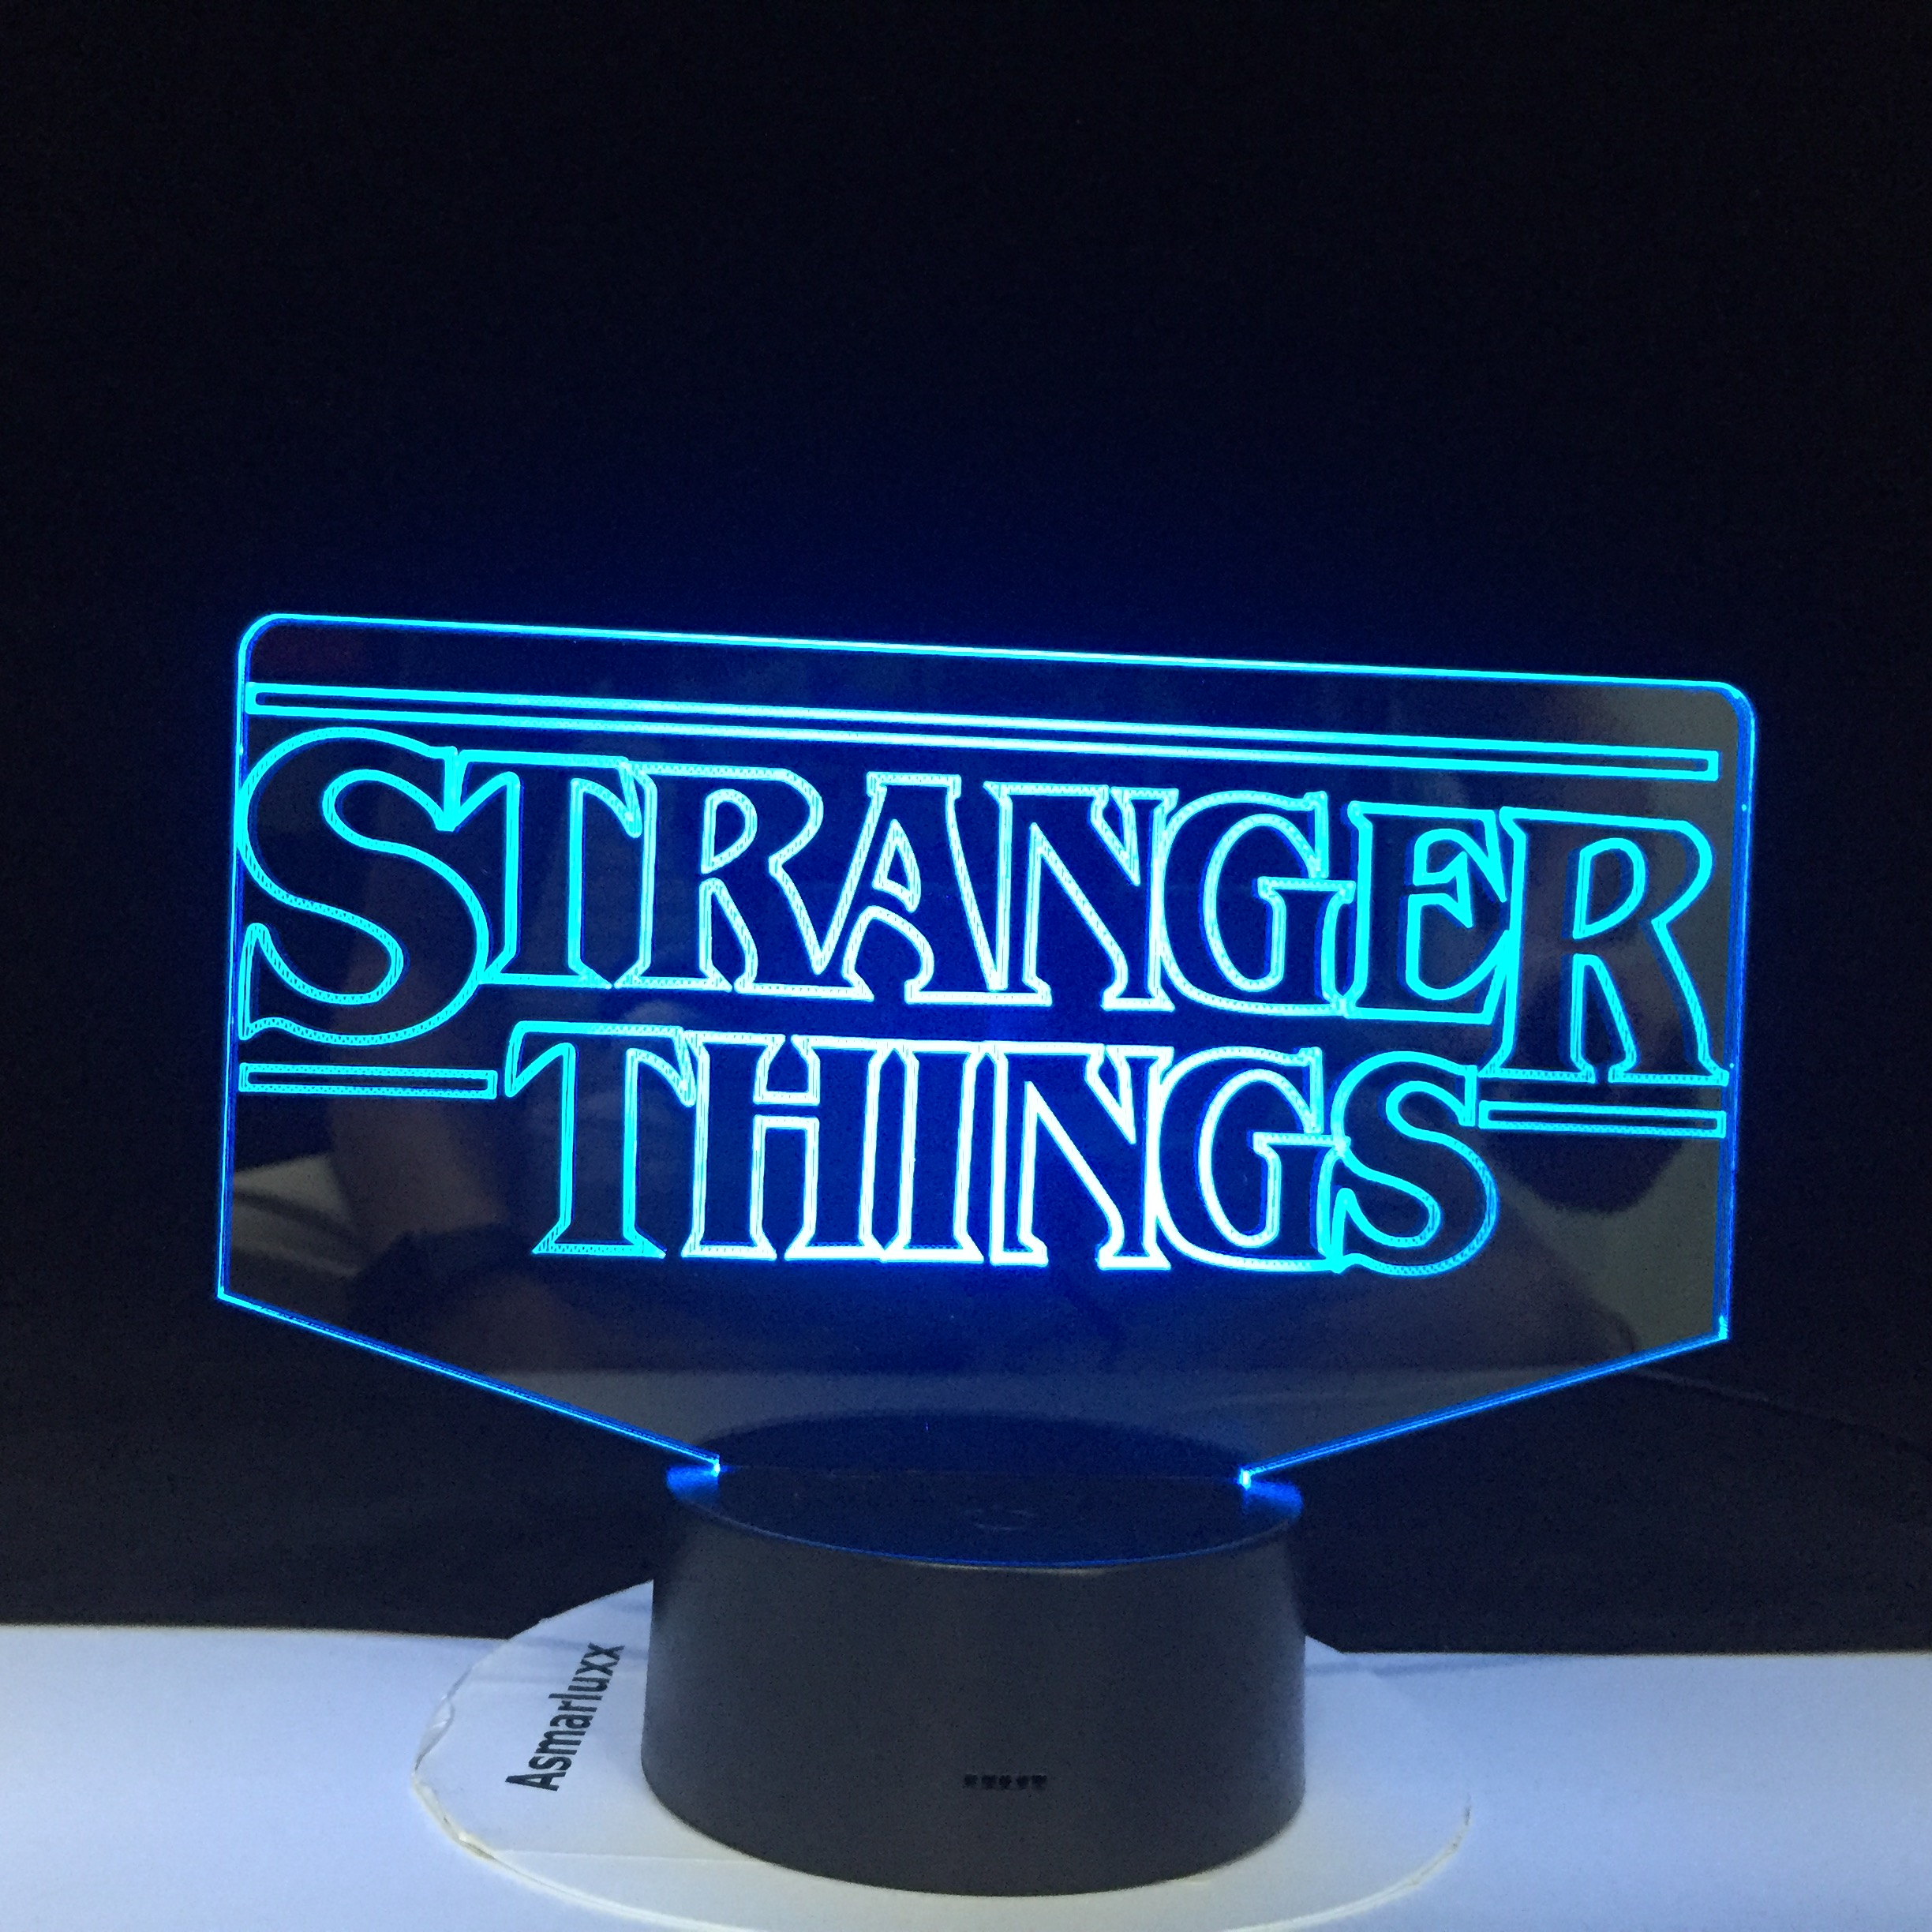 The TV Show Stranger Things Best Present for Adult for Indoor Decoration Battery Powered Dropship 3D Lamp Led Night Light Lamp image